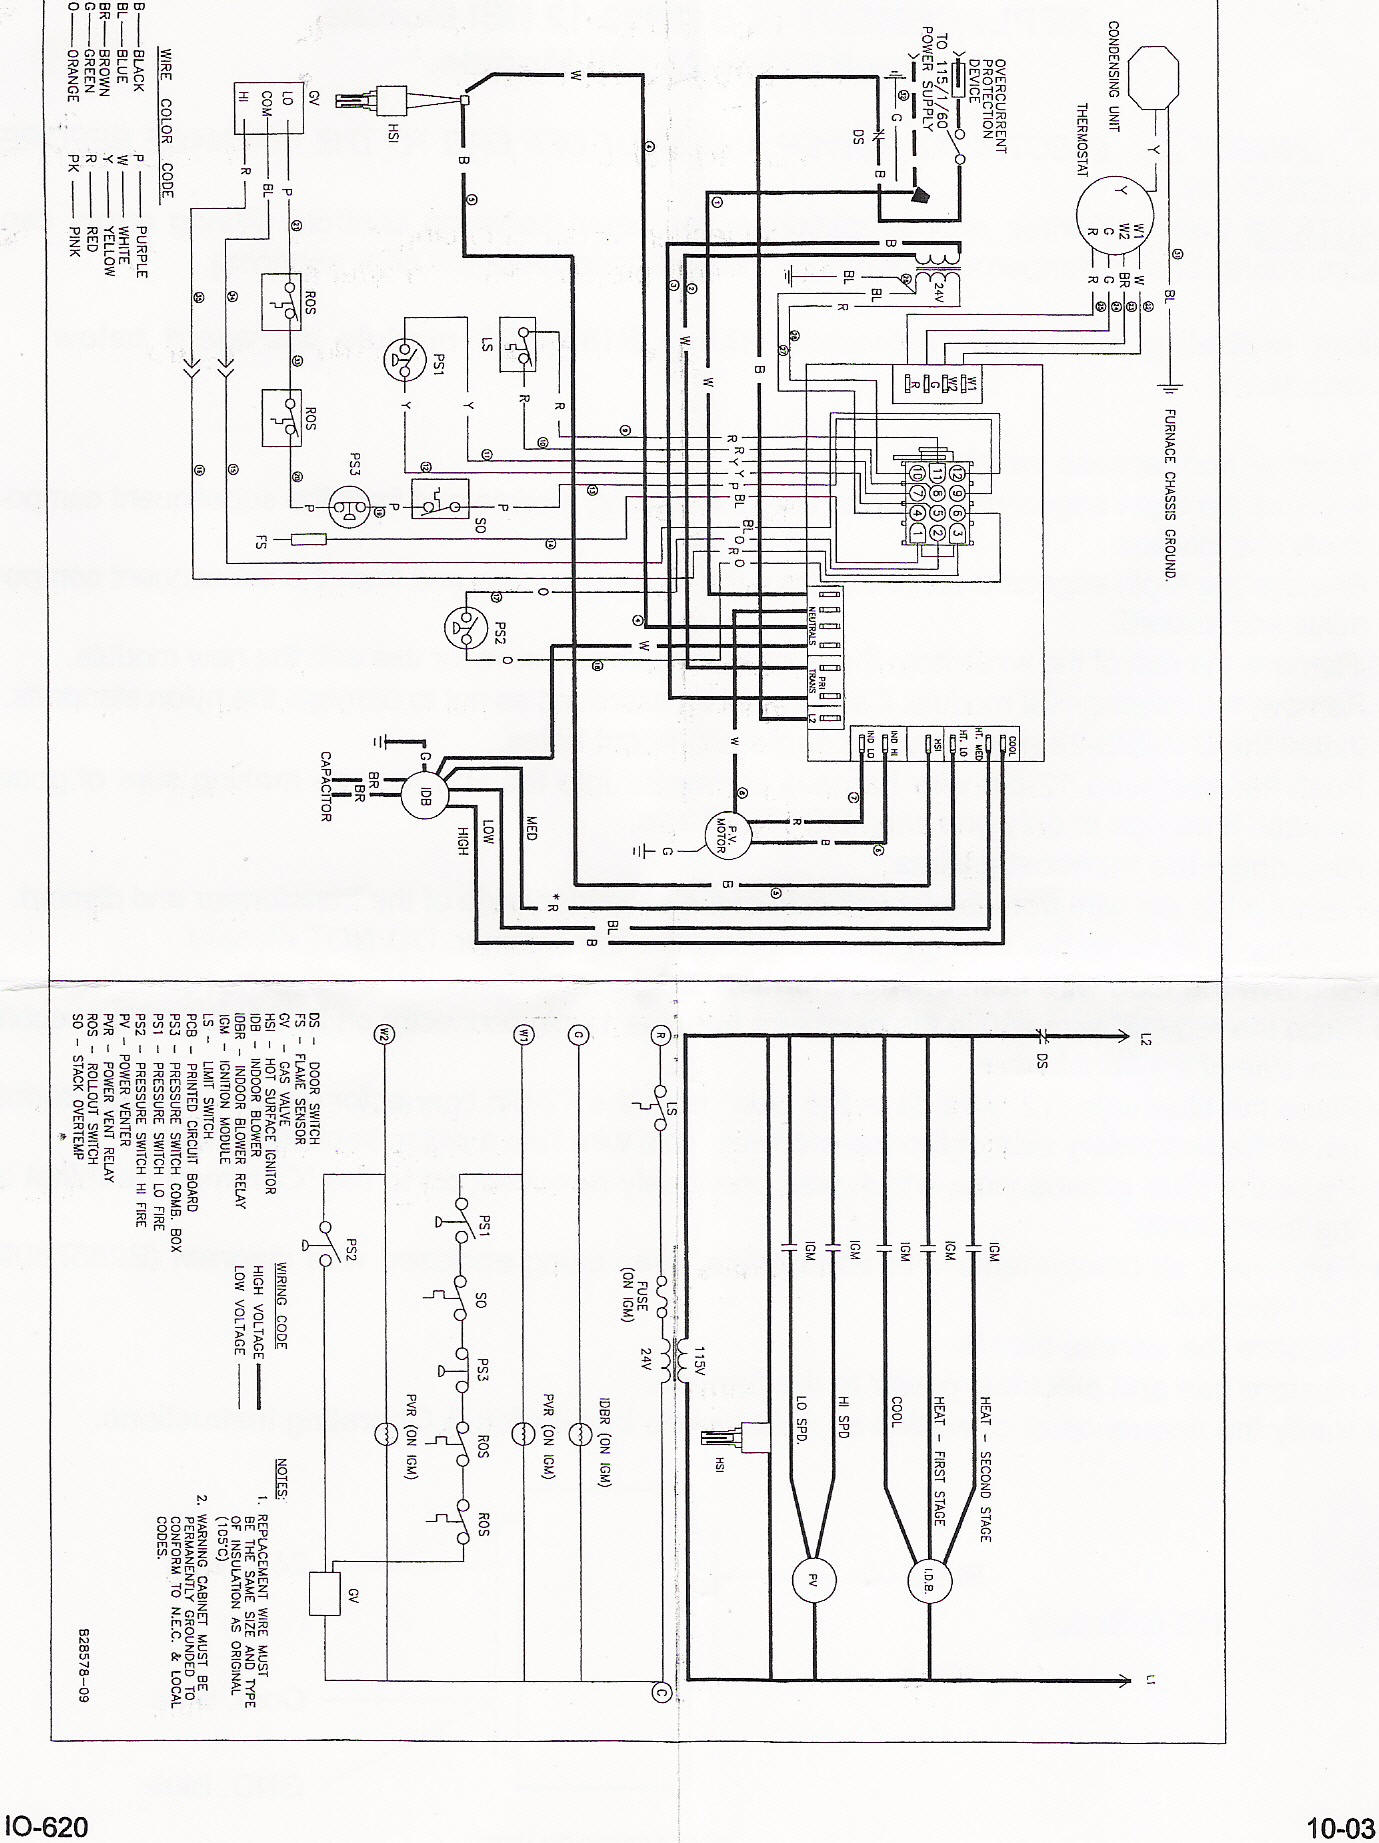 goodma2 instr goodman control board b18099 23 instructions fenwal ignition module wiring diagram at cos-gaming.co